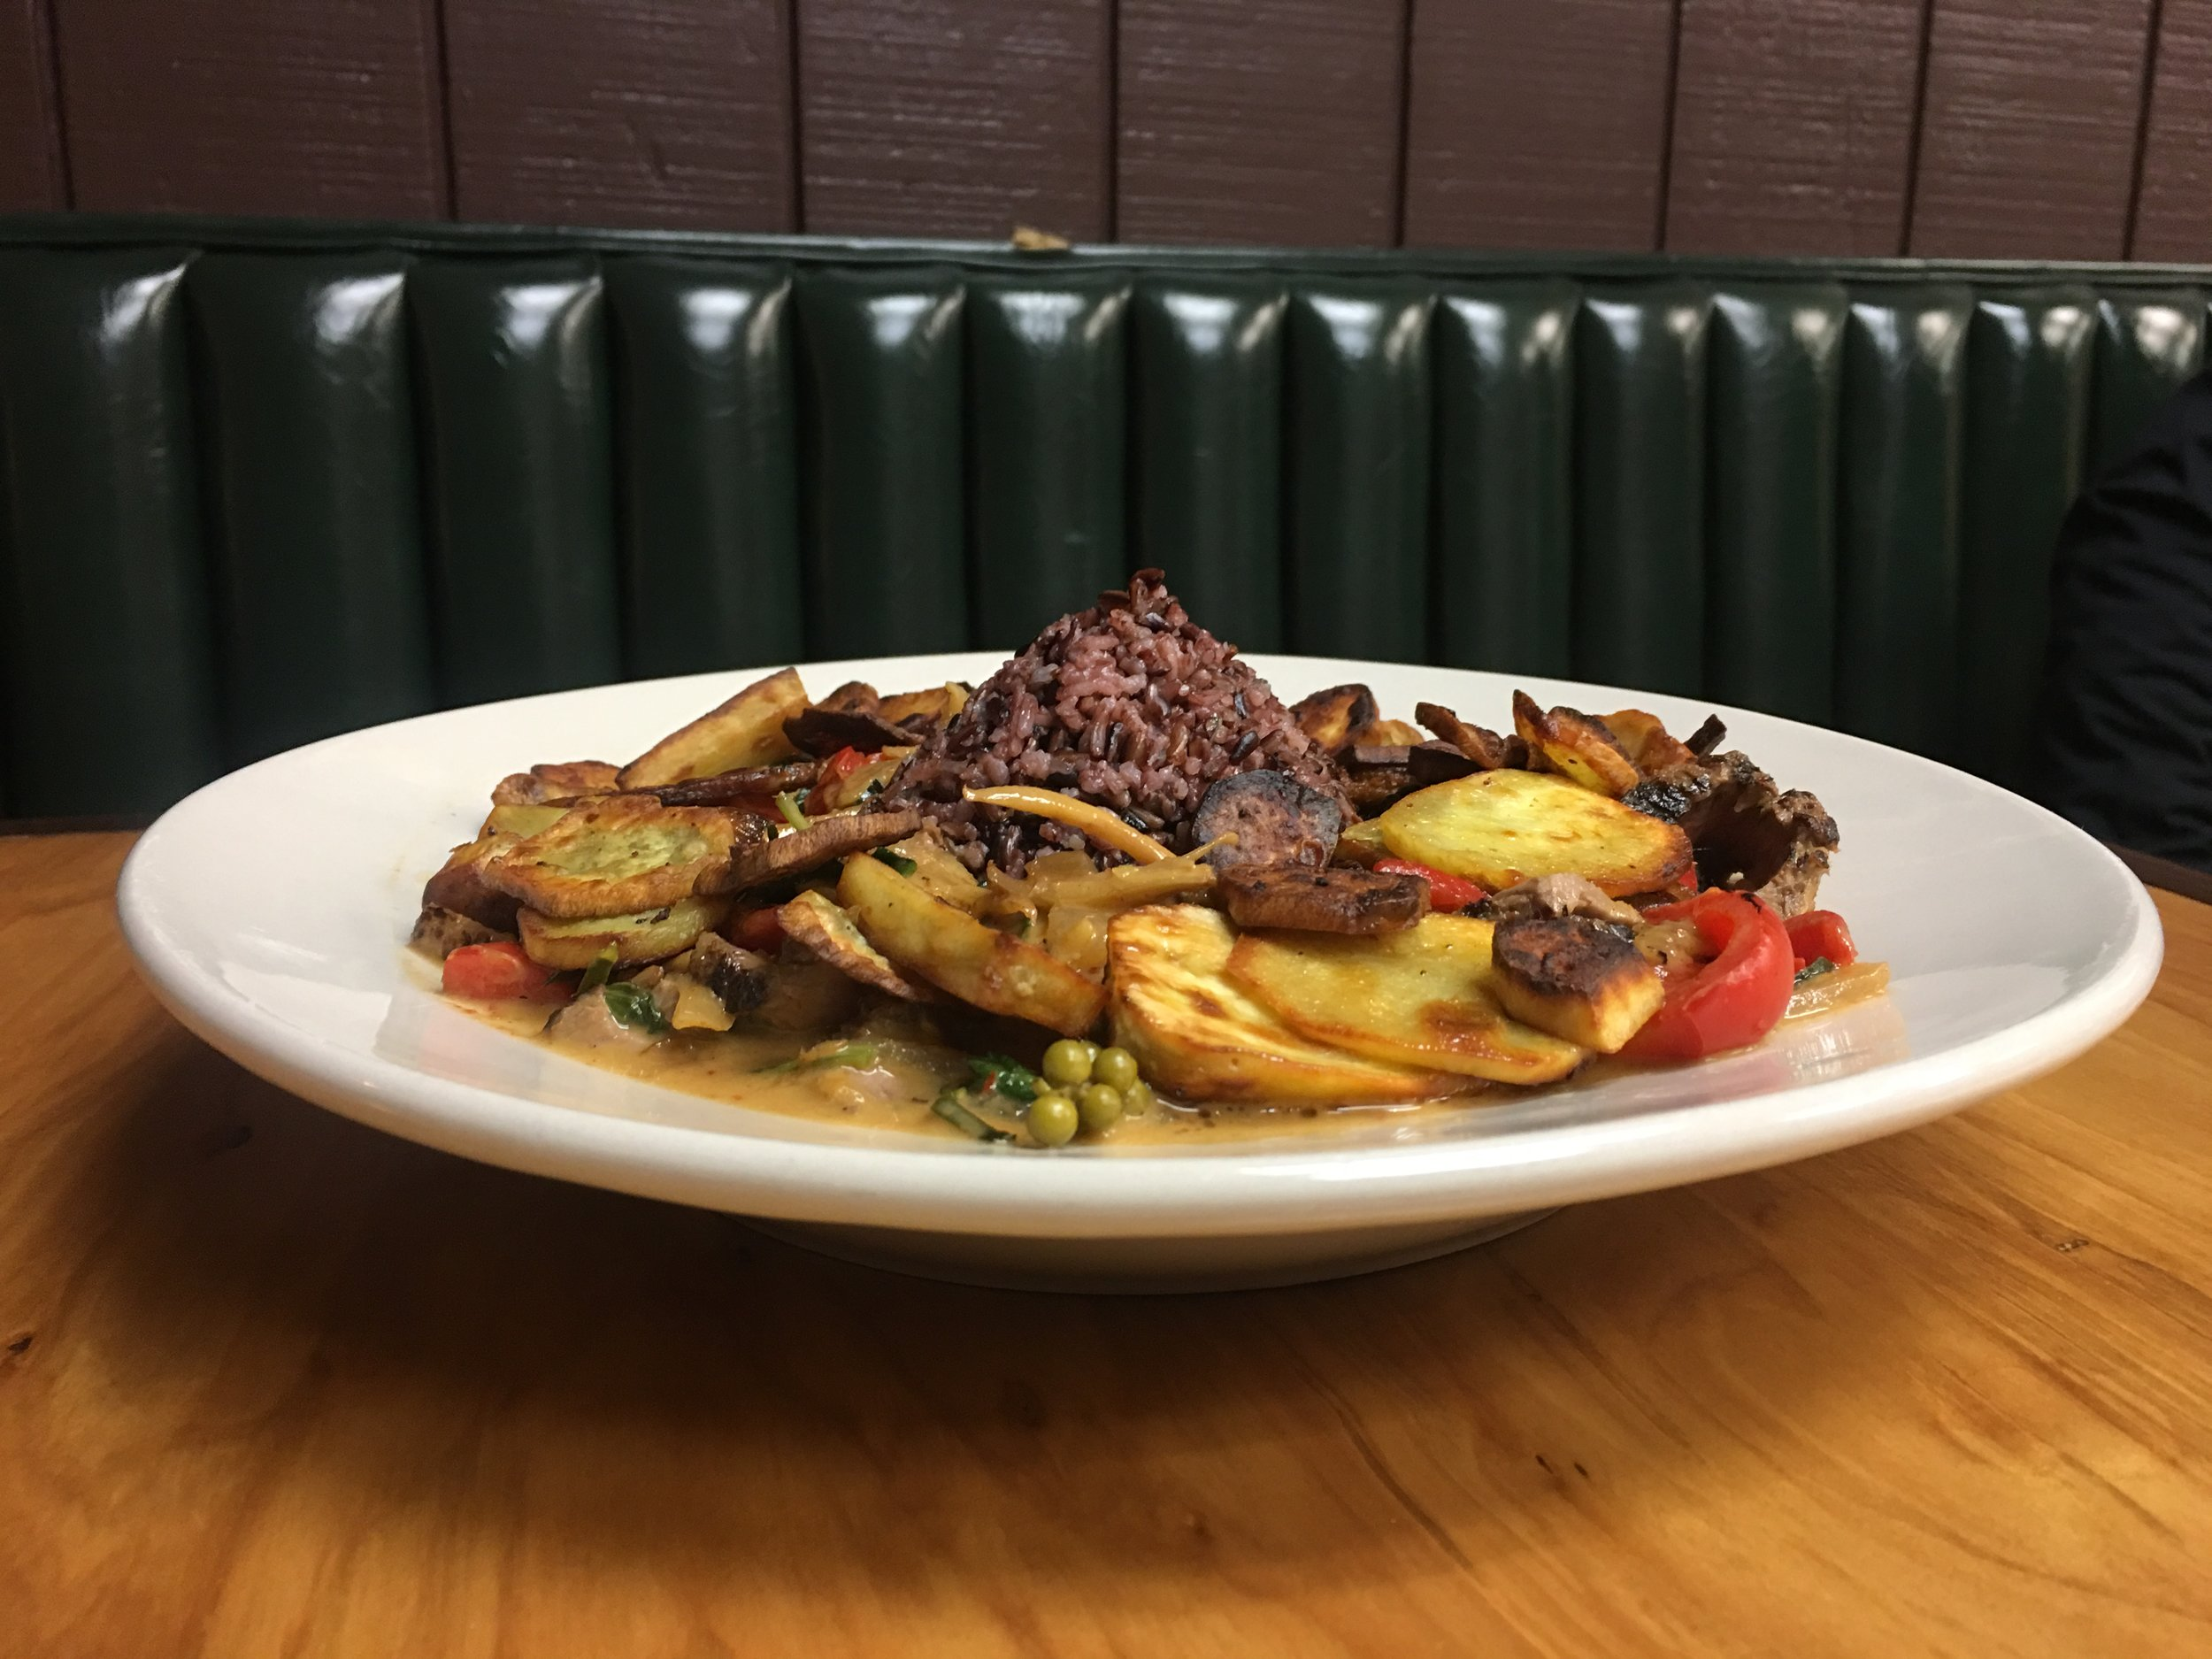 Pad Ped - This one here is pictured with steak and added sweet potato slices at customers request.